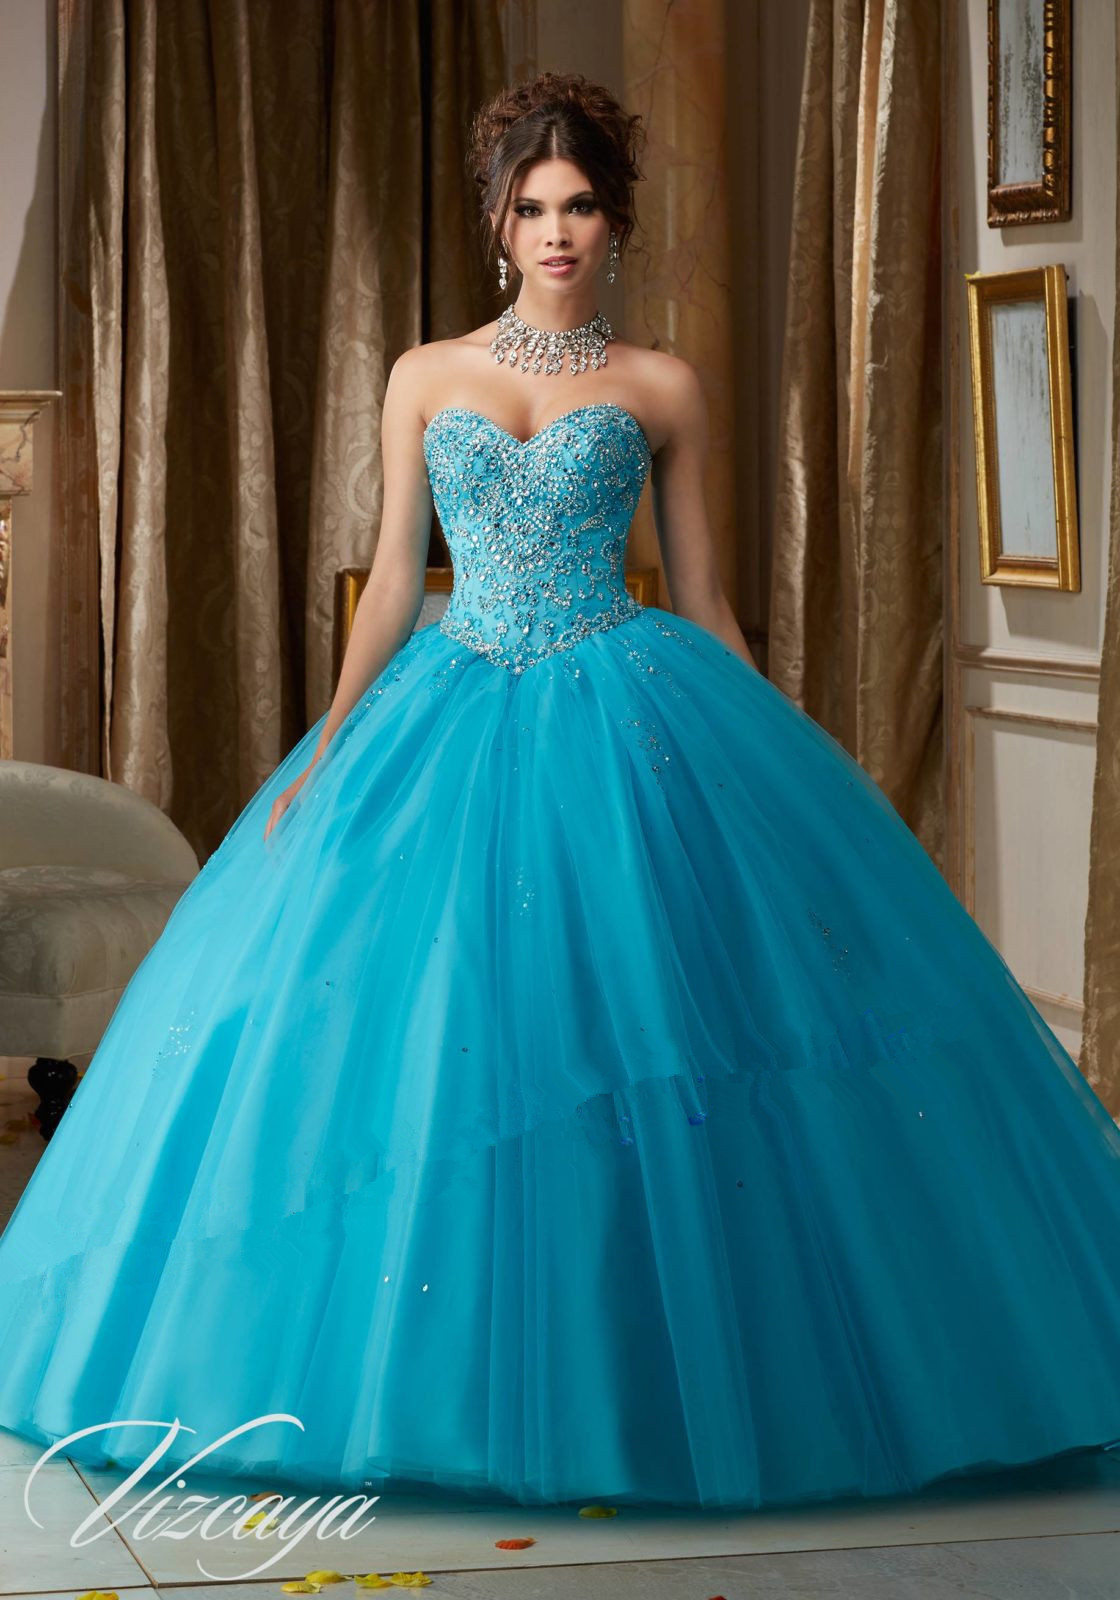 New Fashion Beaded Quinceanera Dress Formal Prom Party Wedding ...